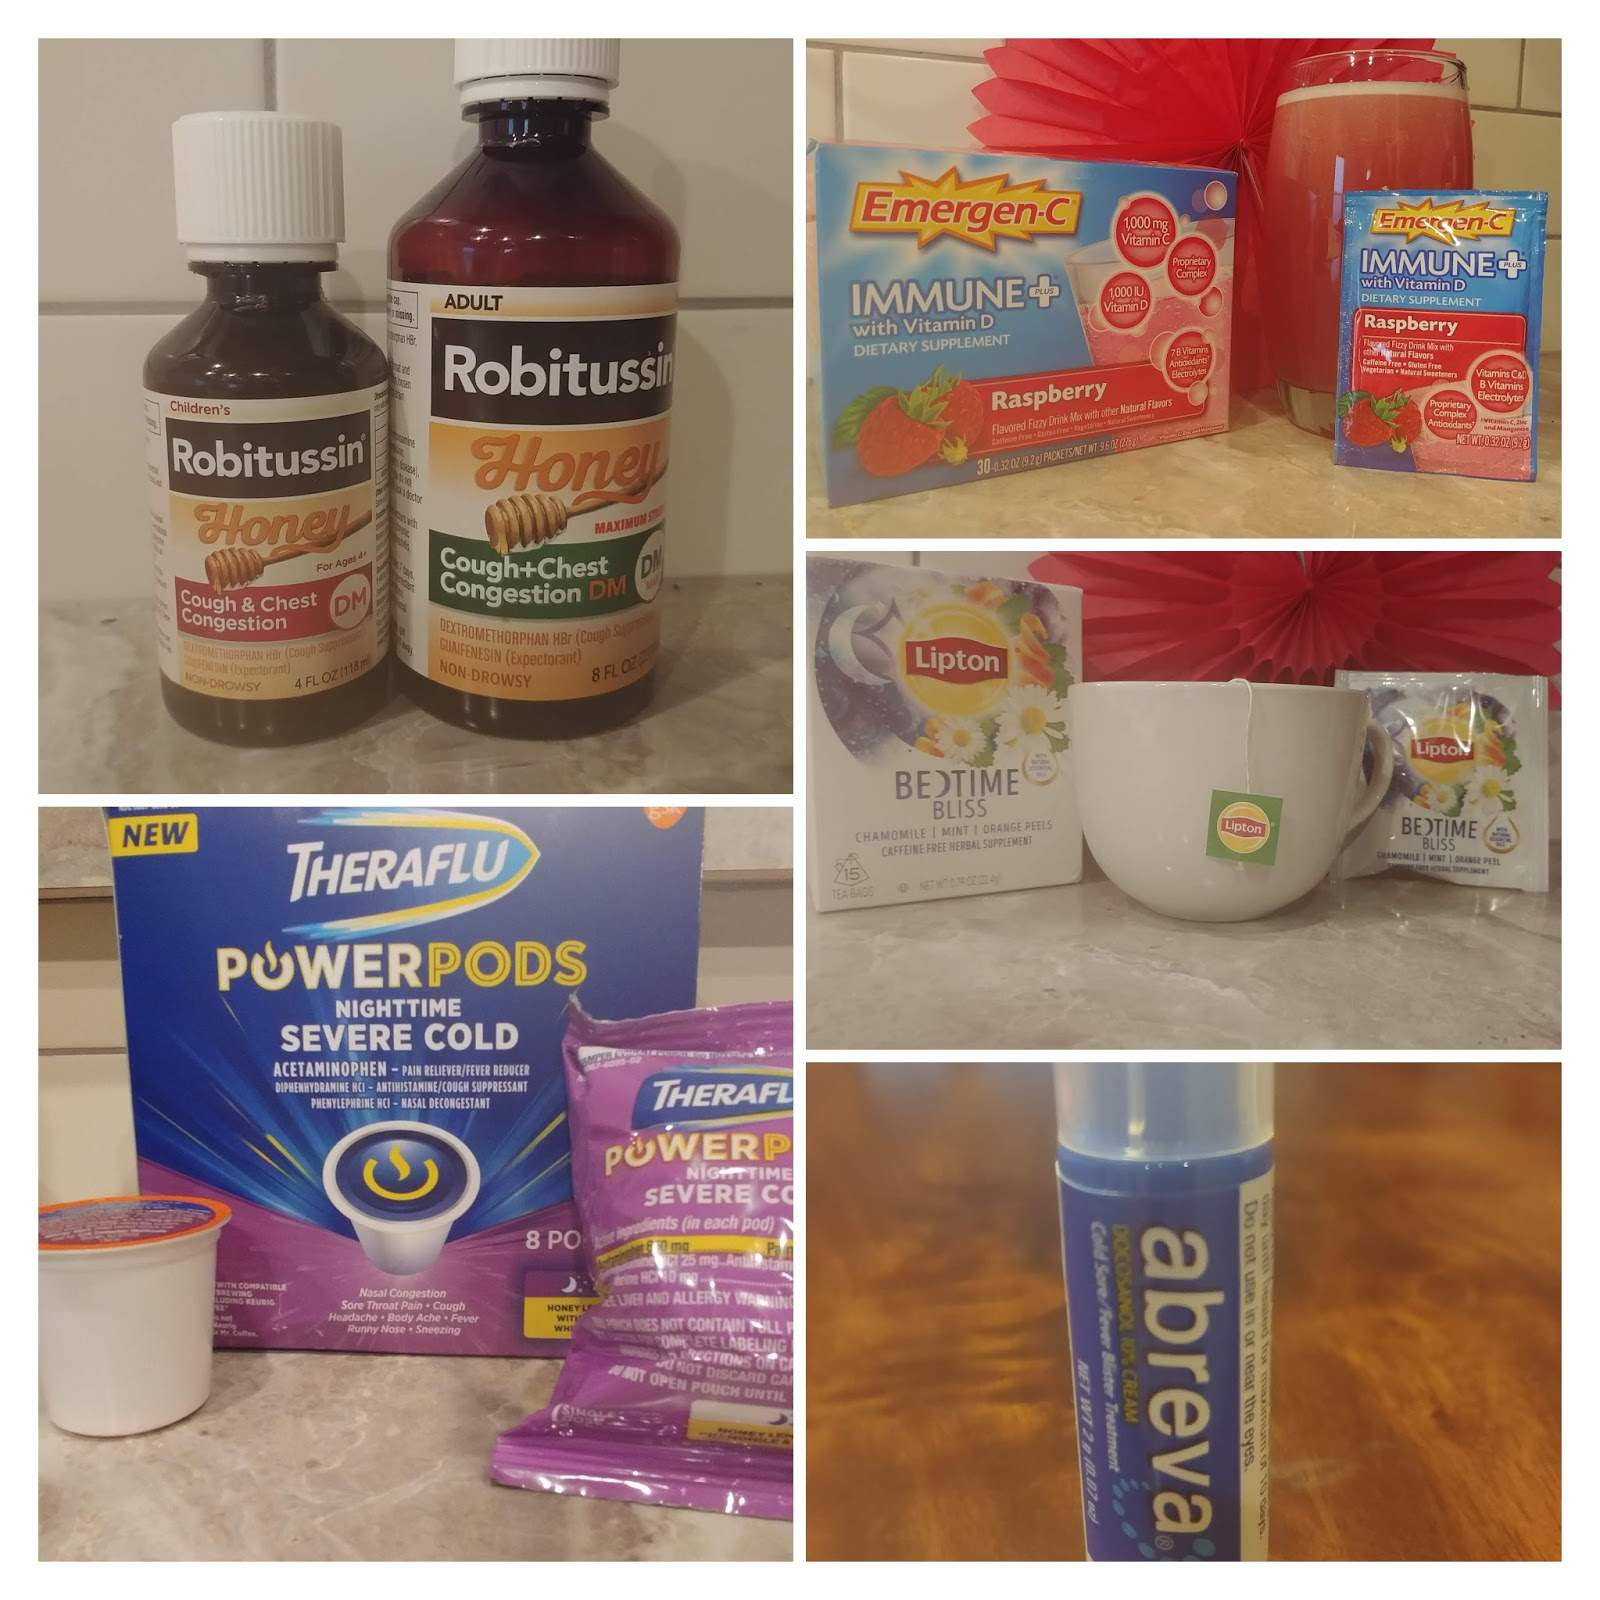 Sick Day Tips For The Busy Parent #ad This shop has been compensated by Collective Bias, Inc., Abreva, Emergen-C, Lipton, Robitussin, Theraflu. All opinions are mine alone. #SickDayTips #CollectiveBias